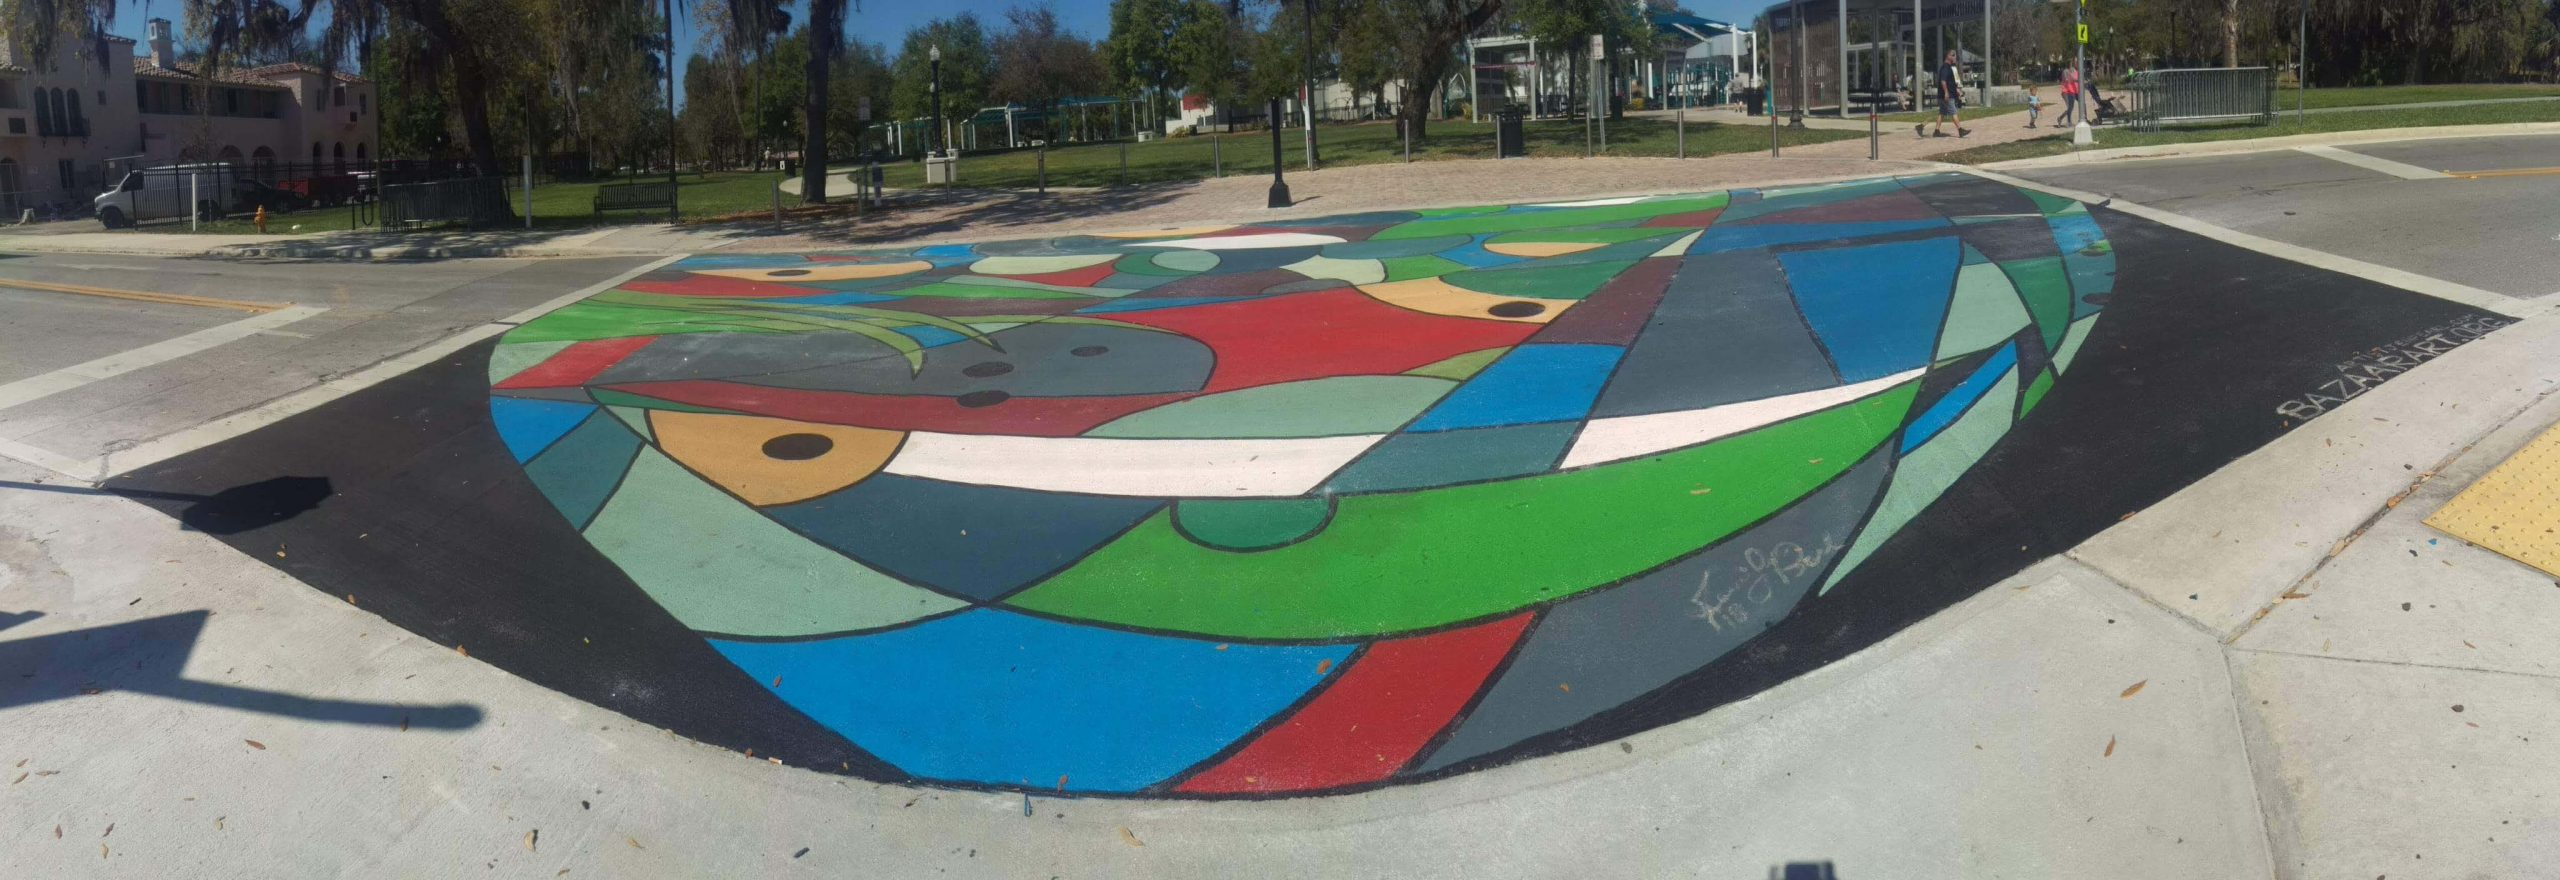 Stained Glass Crosswalk Project